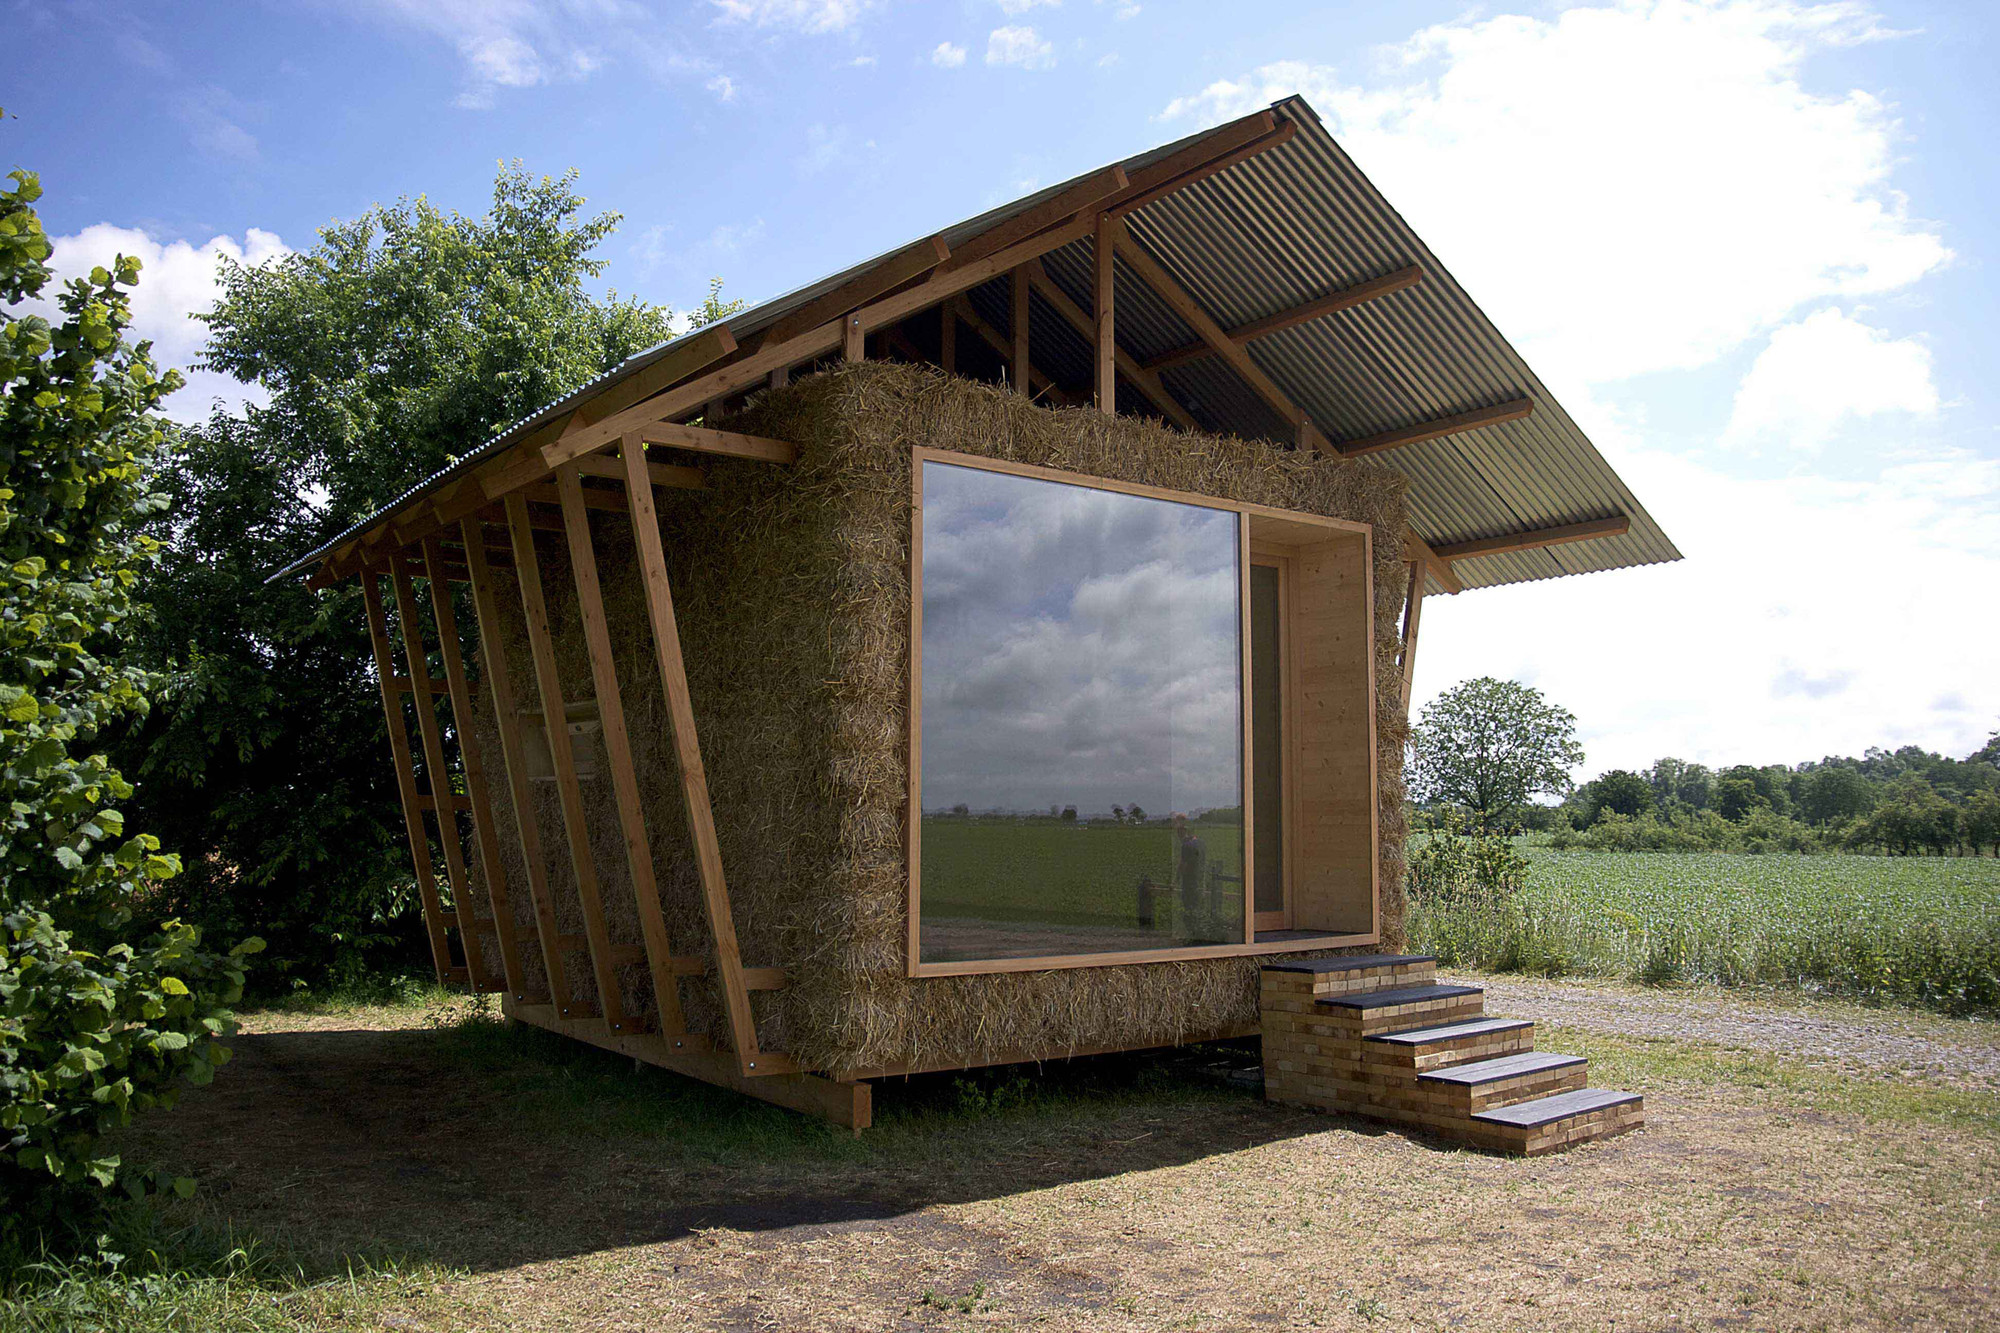 Ecologic Pavilion In Alsace / Studio 1984, Courtesy of Studio 1984